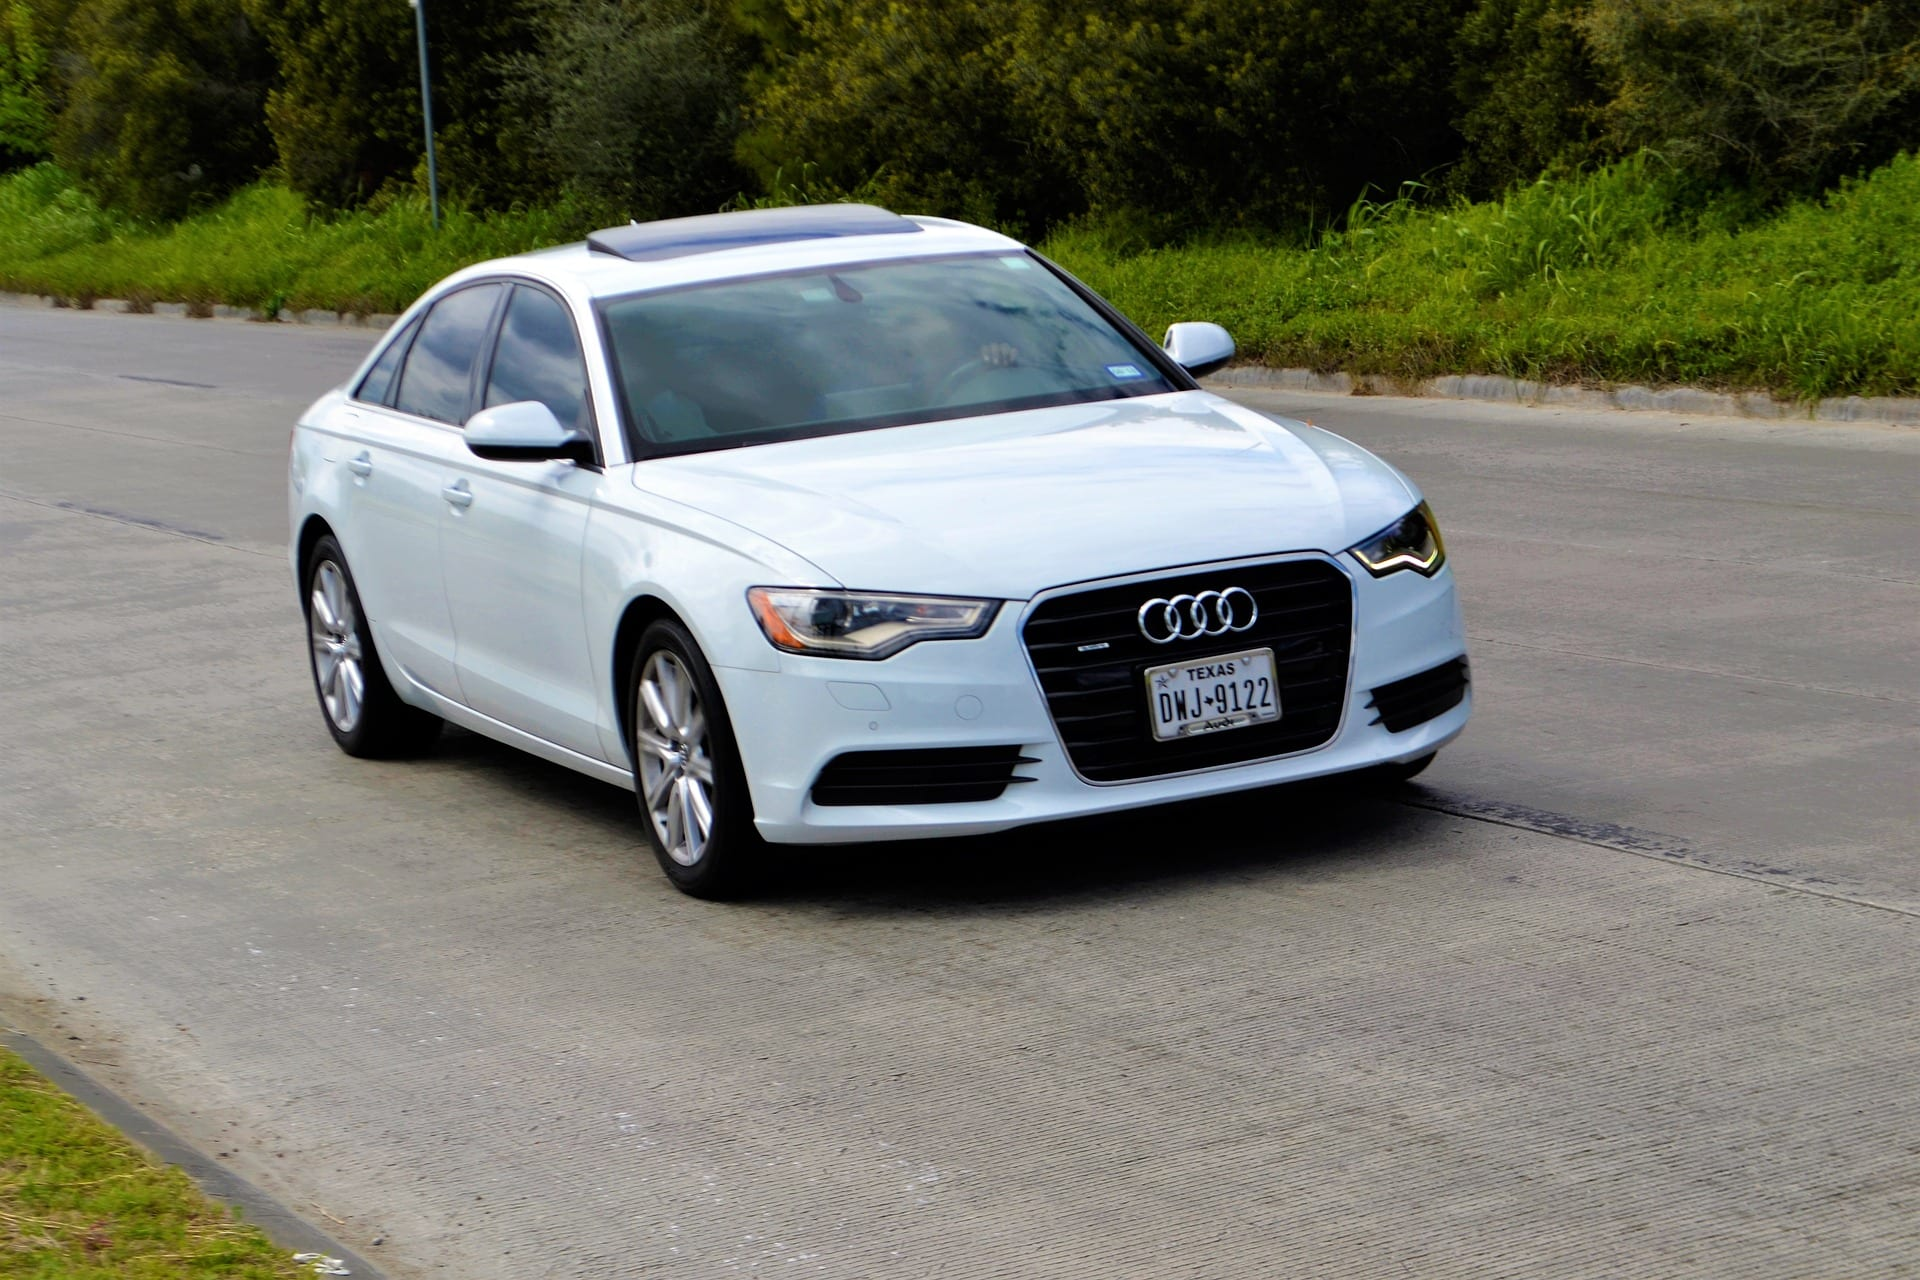 White Audi A6 sedan; image by ArtisticImpressions, via Pixabay.com.